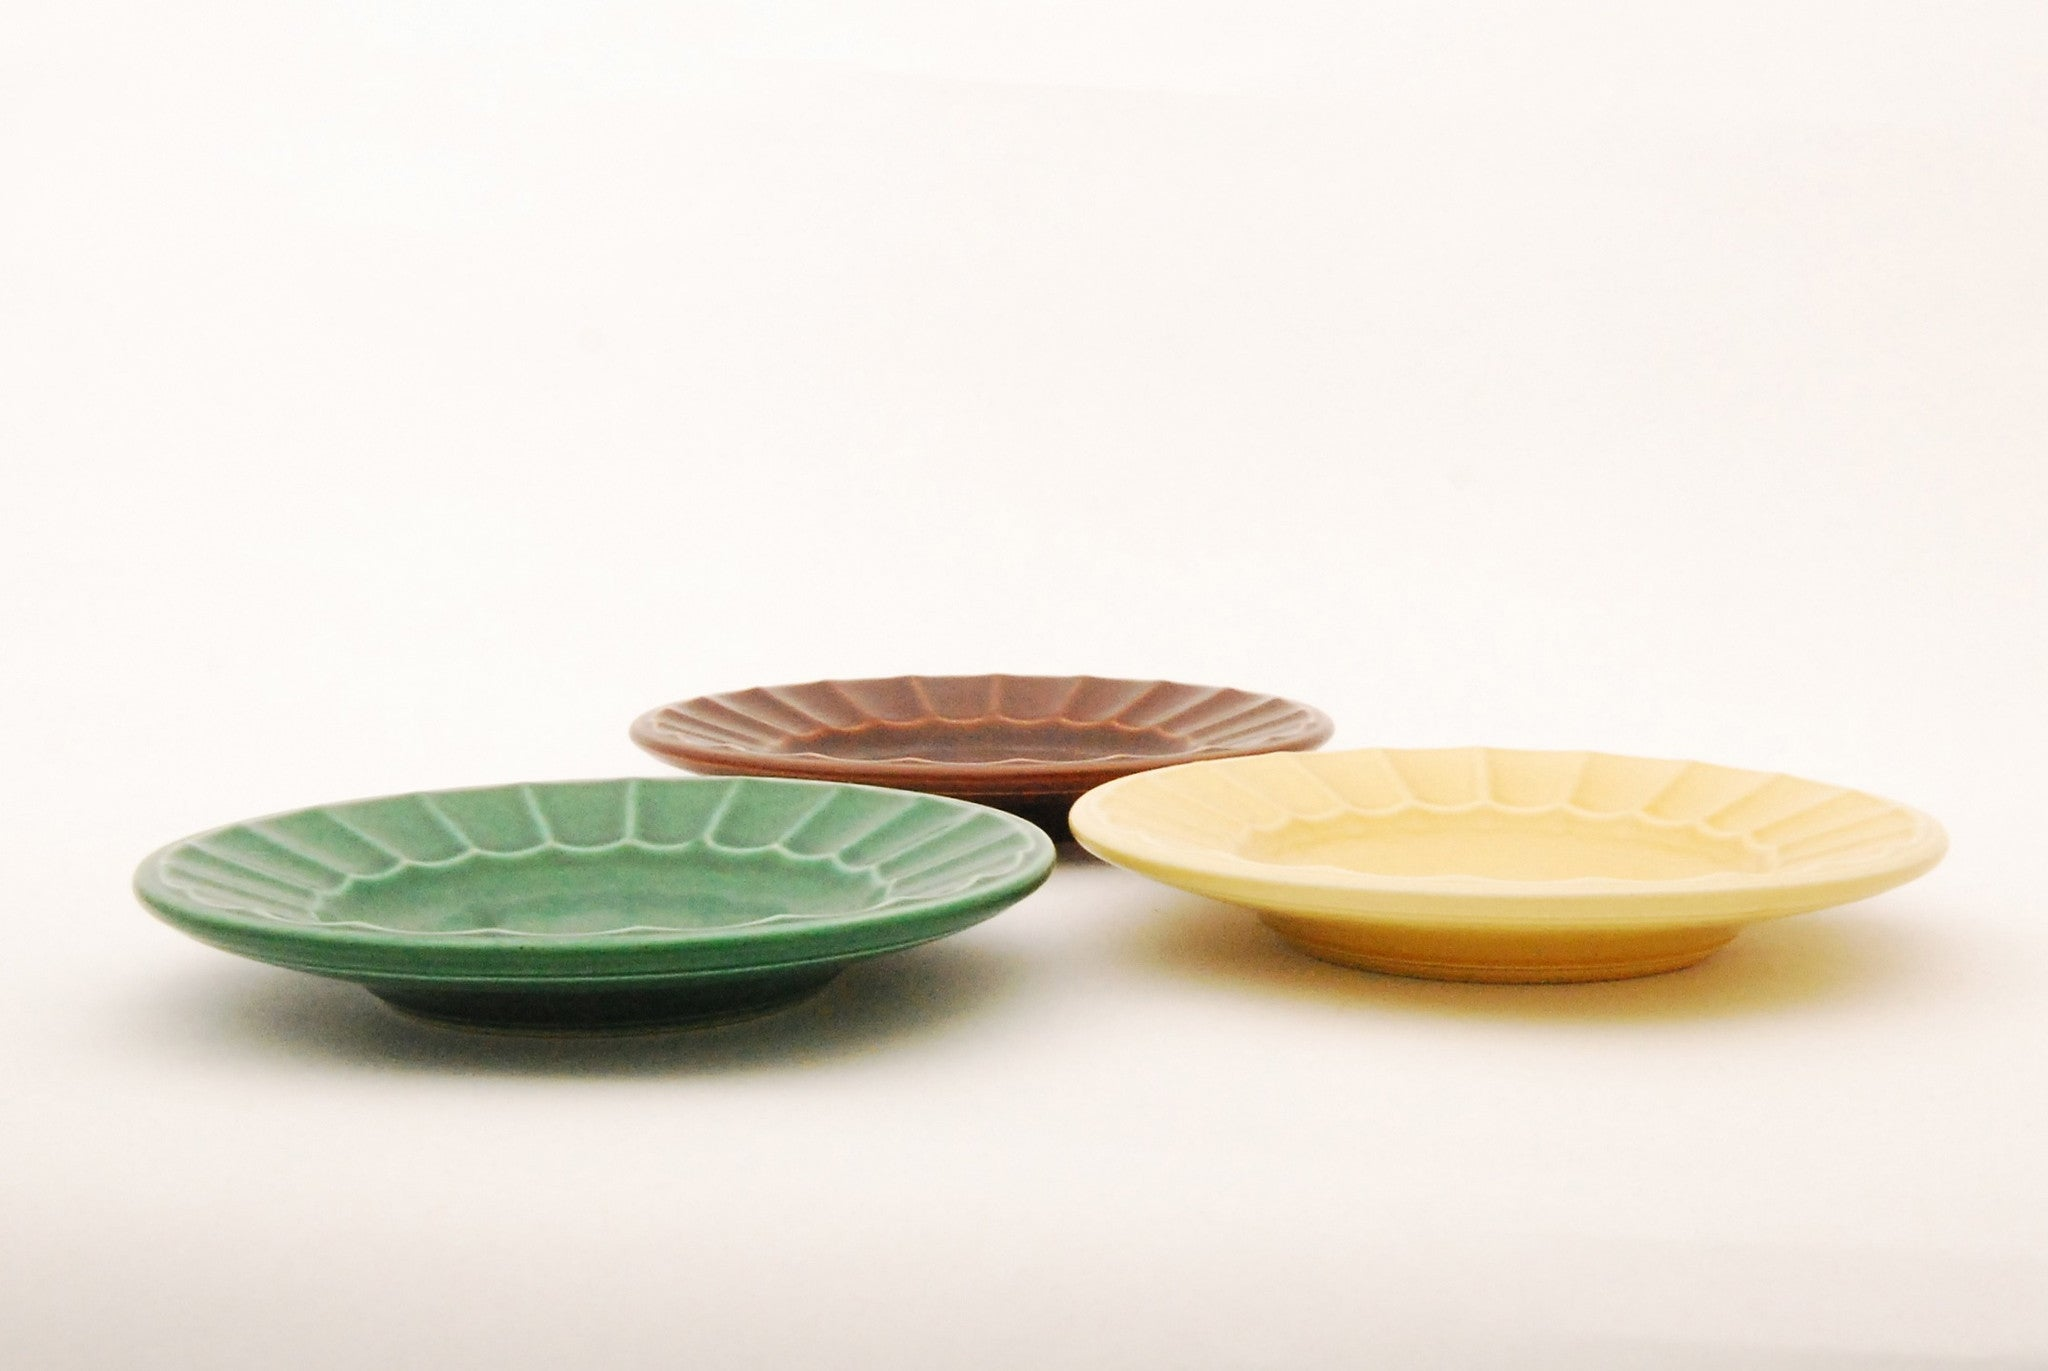 Marselis plates by Nils Thorsson